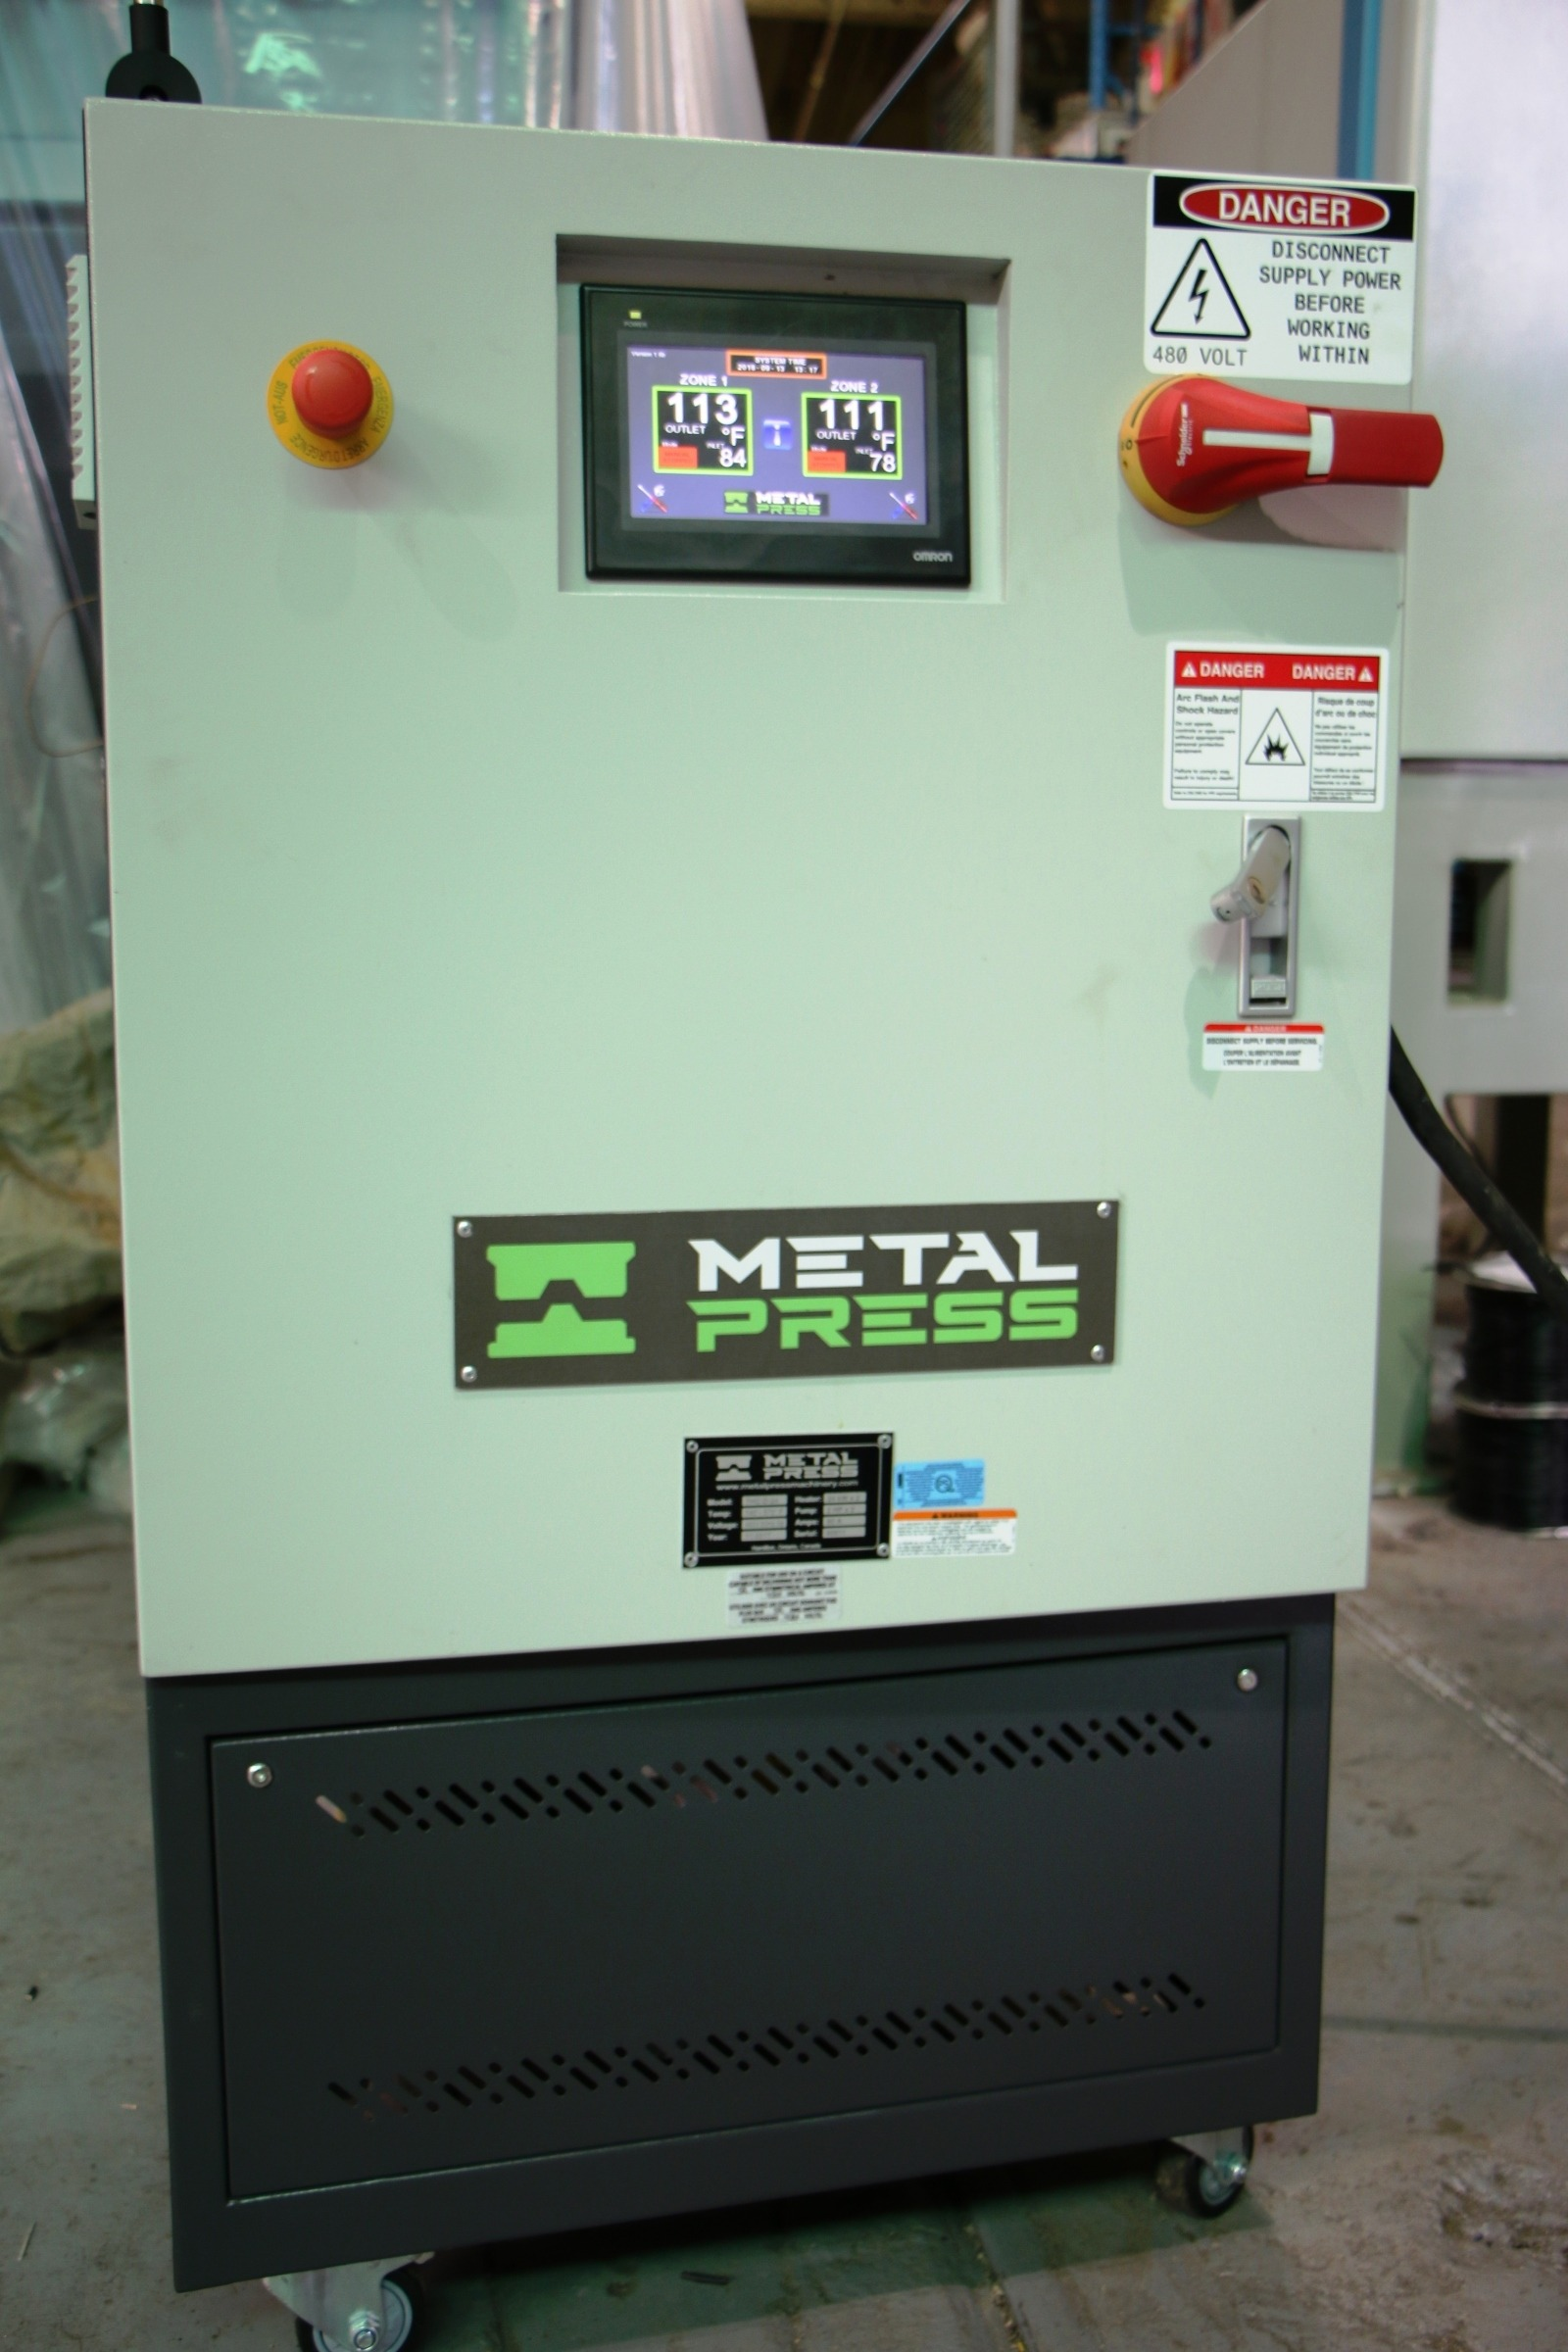 New MetalPress Hot Oil Temperature Control Unit #4558